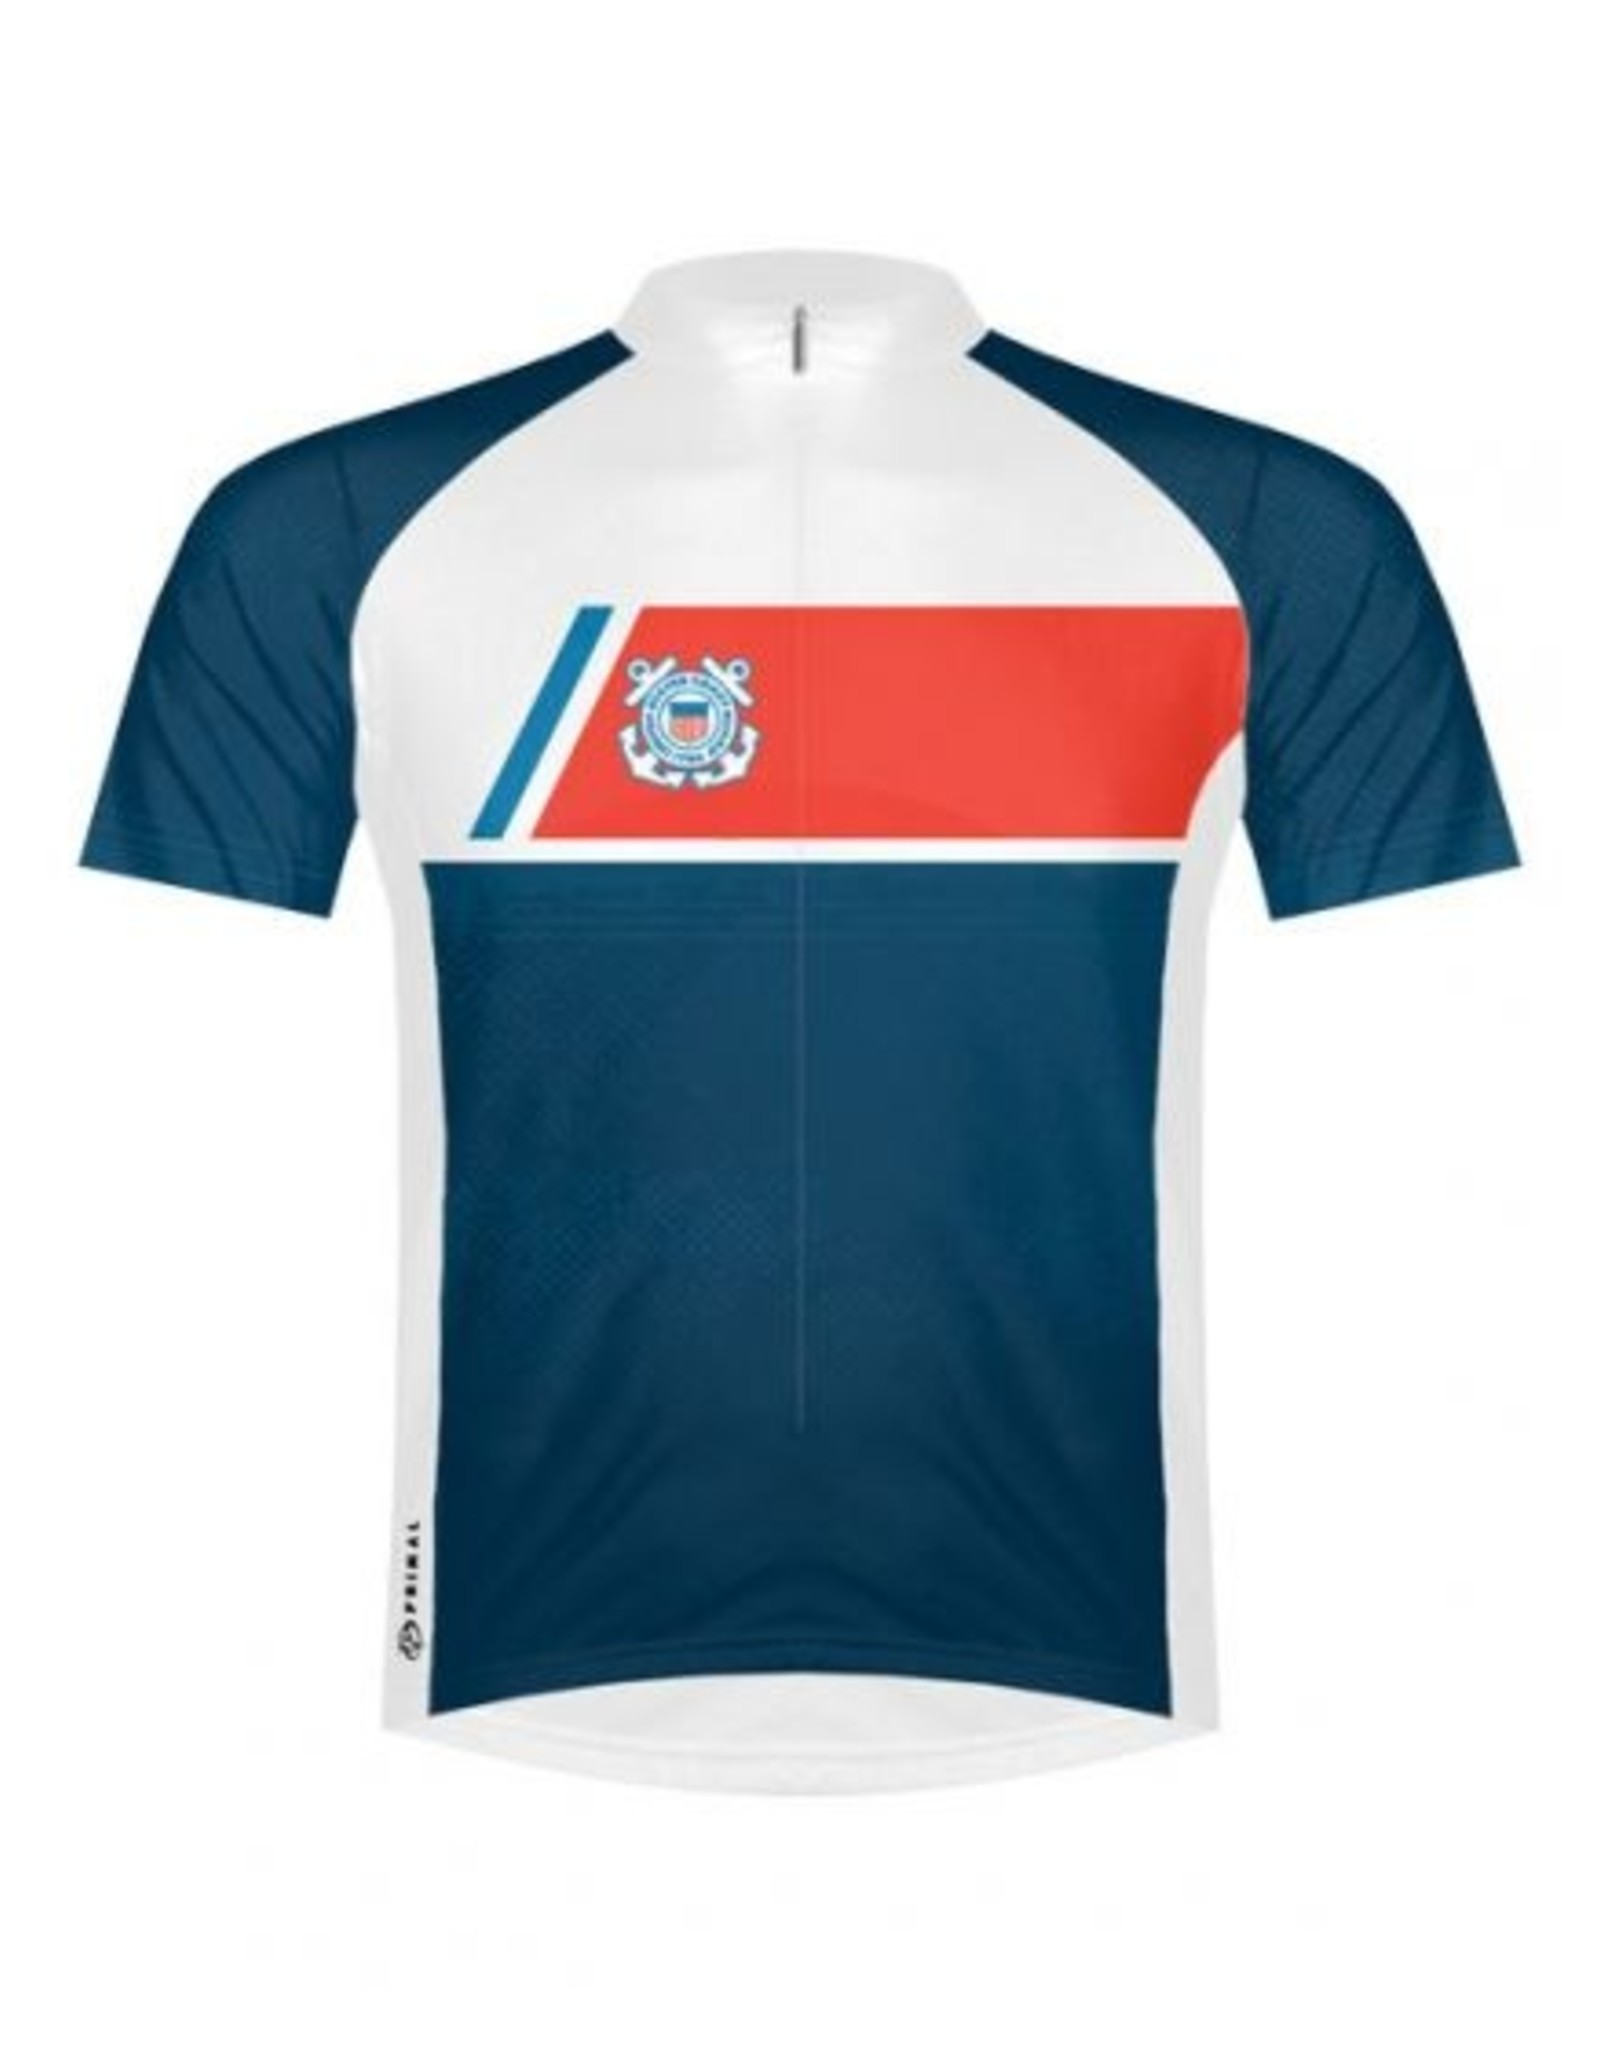 Primal Wear Jersey - Primal US Coast Guard Nav